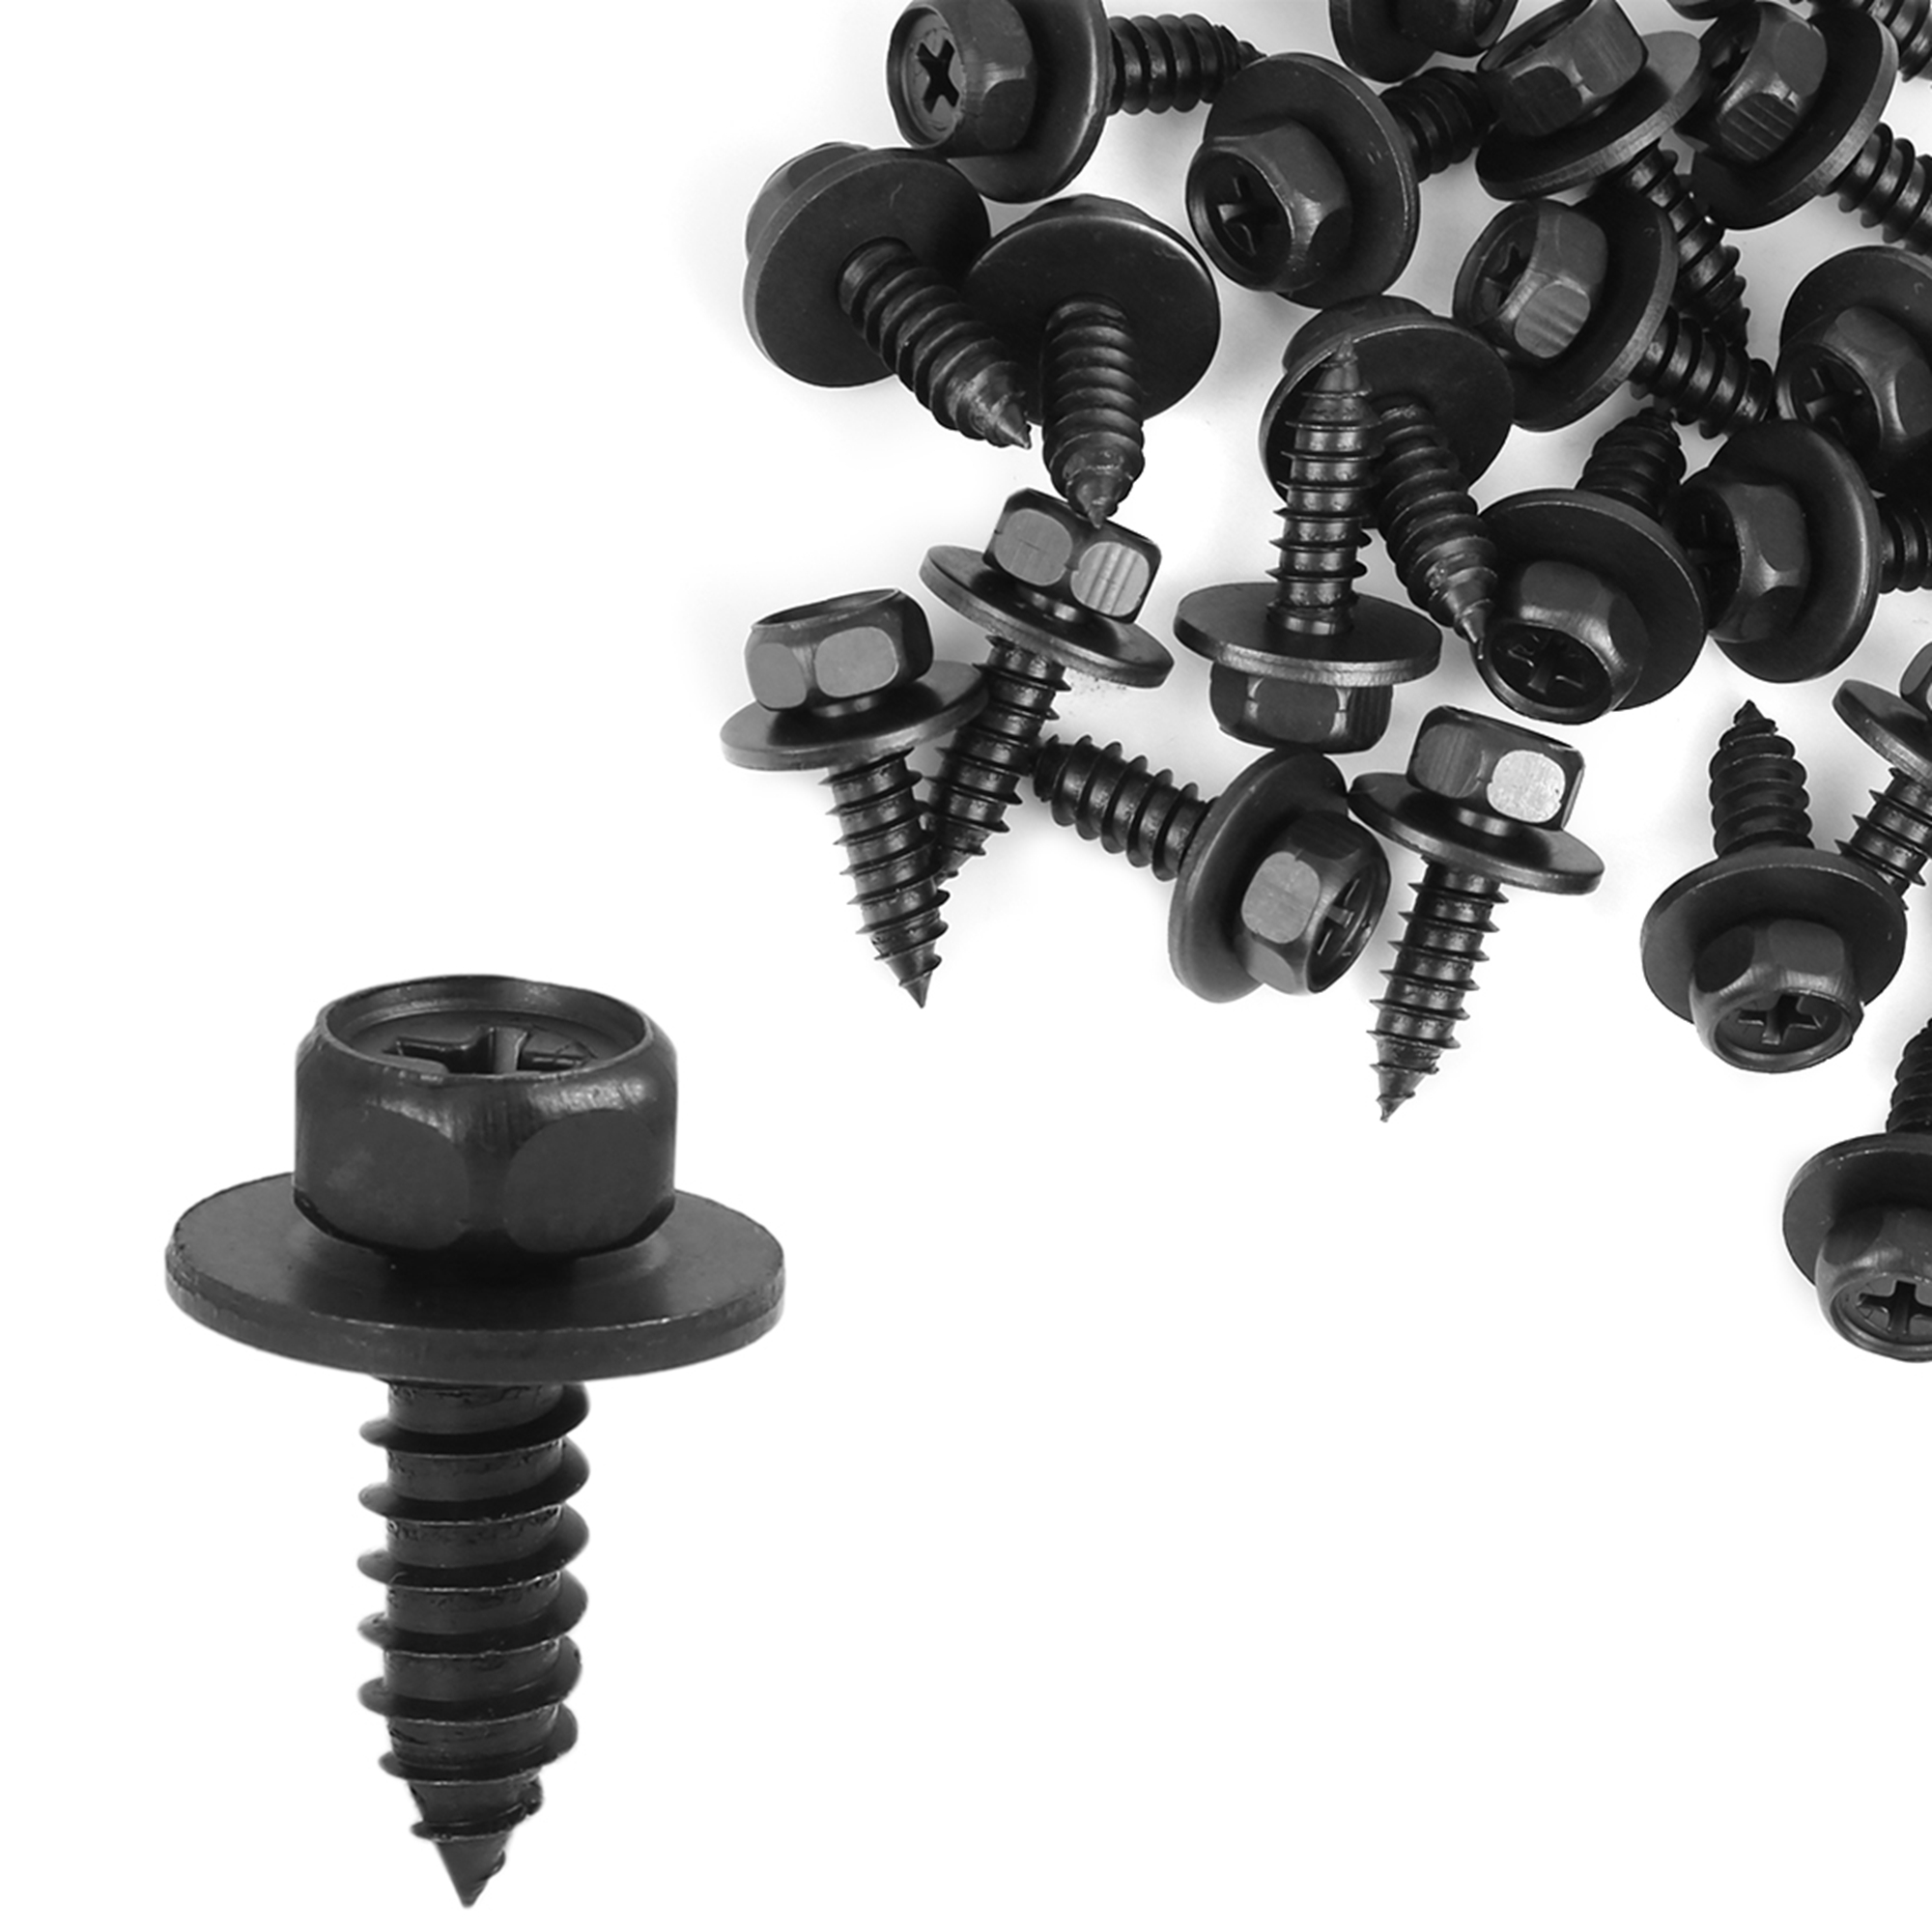 25pcs Hex Head Screw with Washer Black 90159-60498 for Toyota